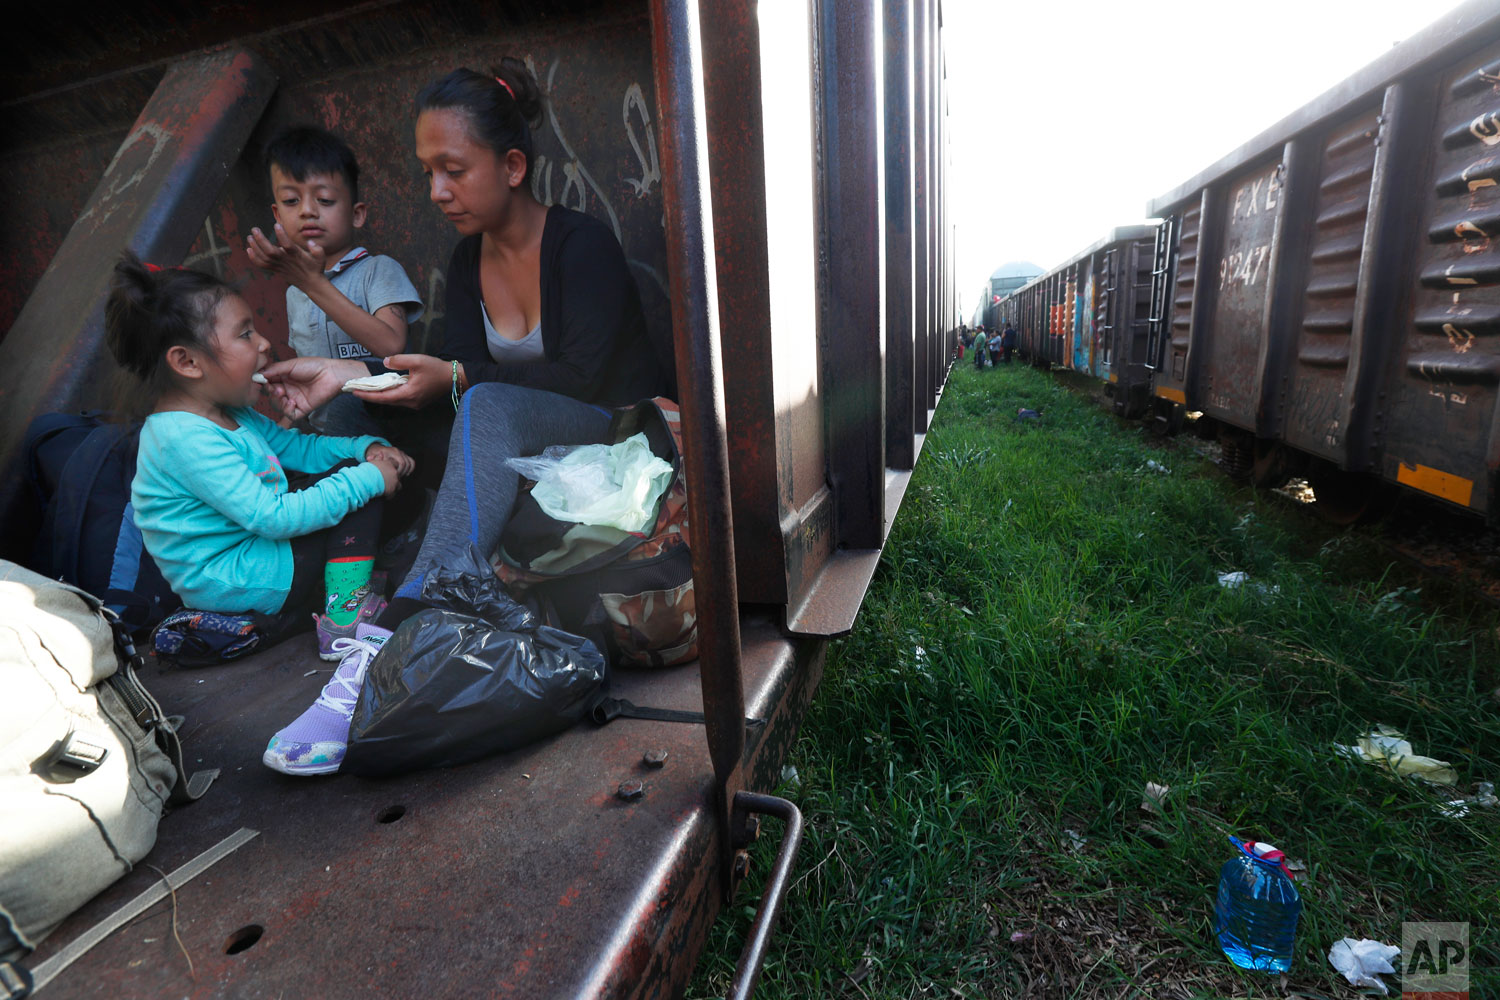 A migrant mother and children ride a freight train on their way north, in Palenque, Chiapas state, Mexico, Monday, June 24, 2019.  (AP Photo/Marco Ugarte)